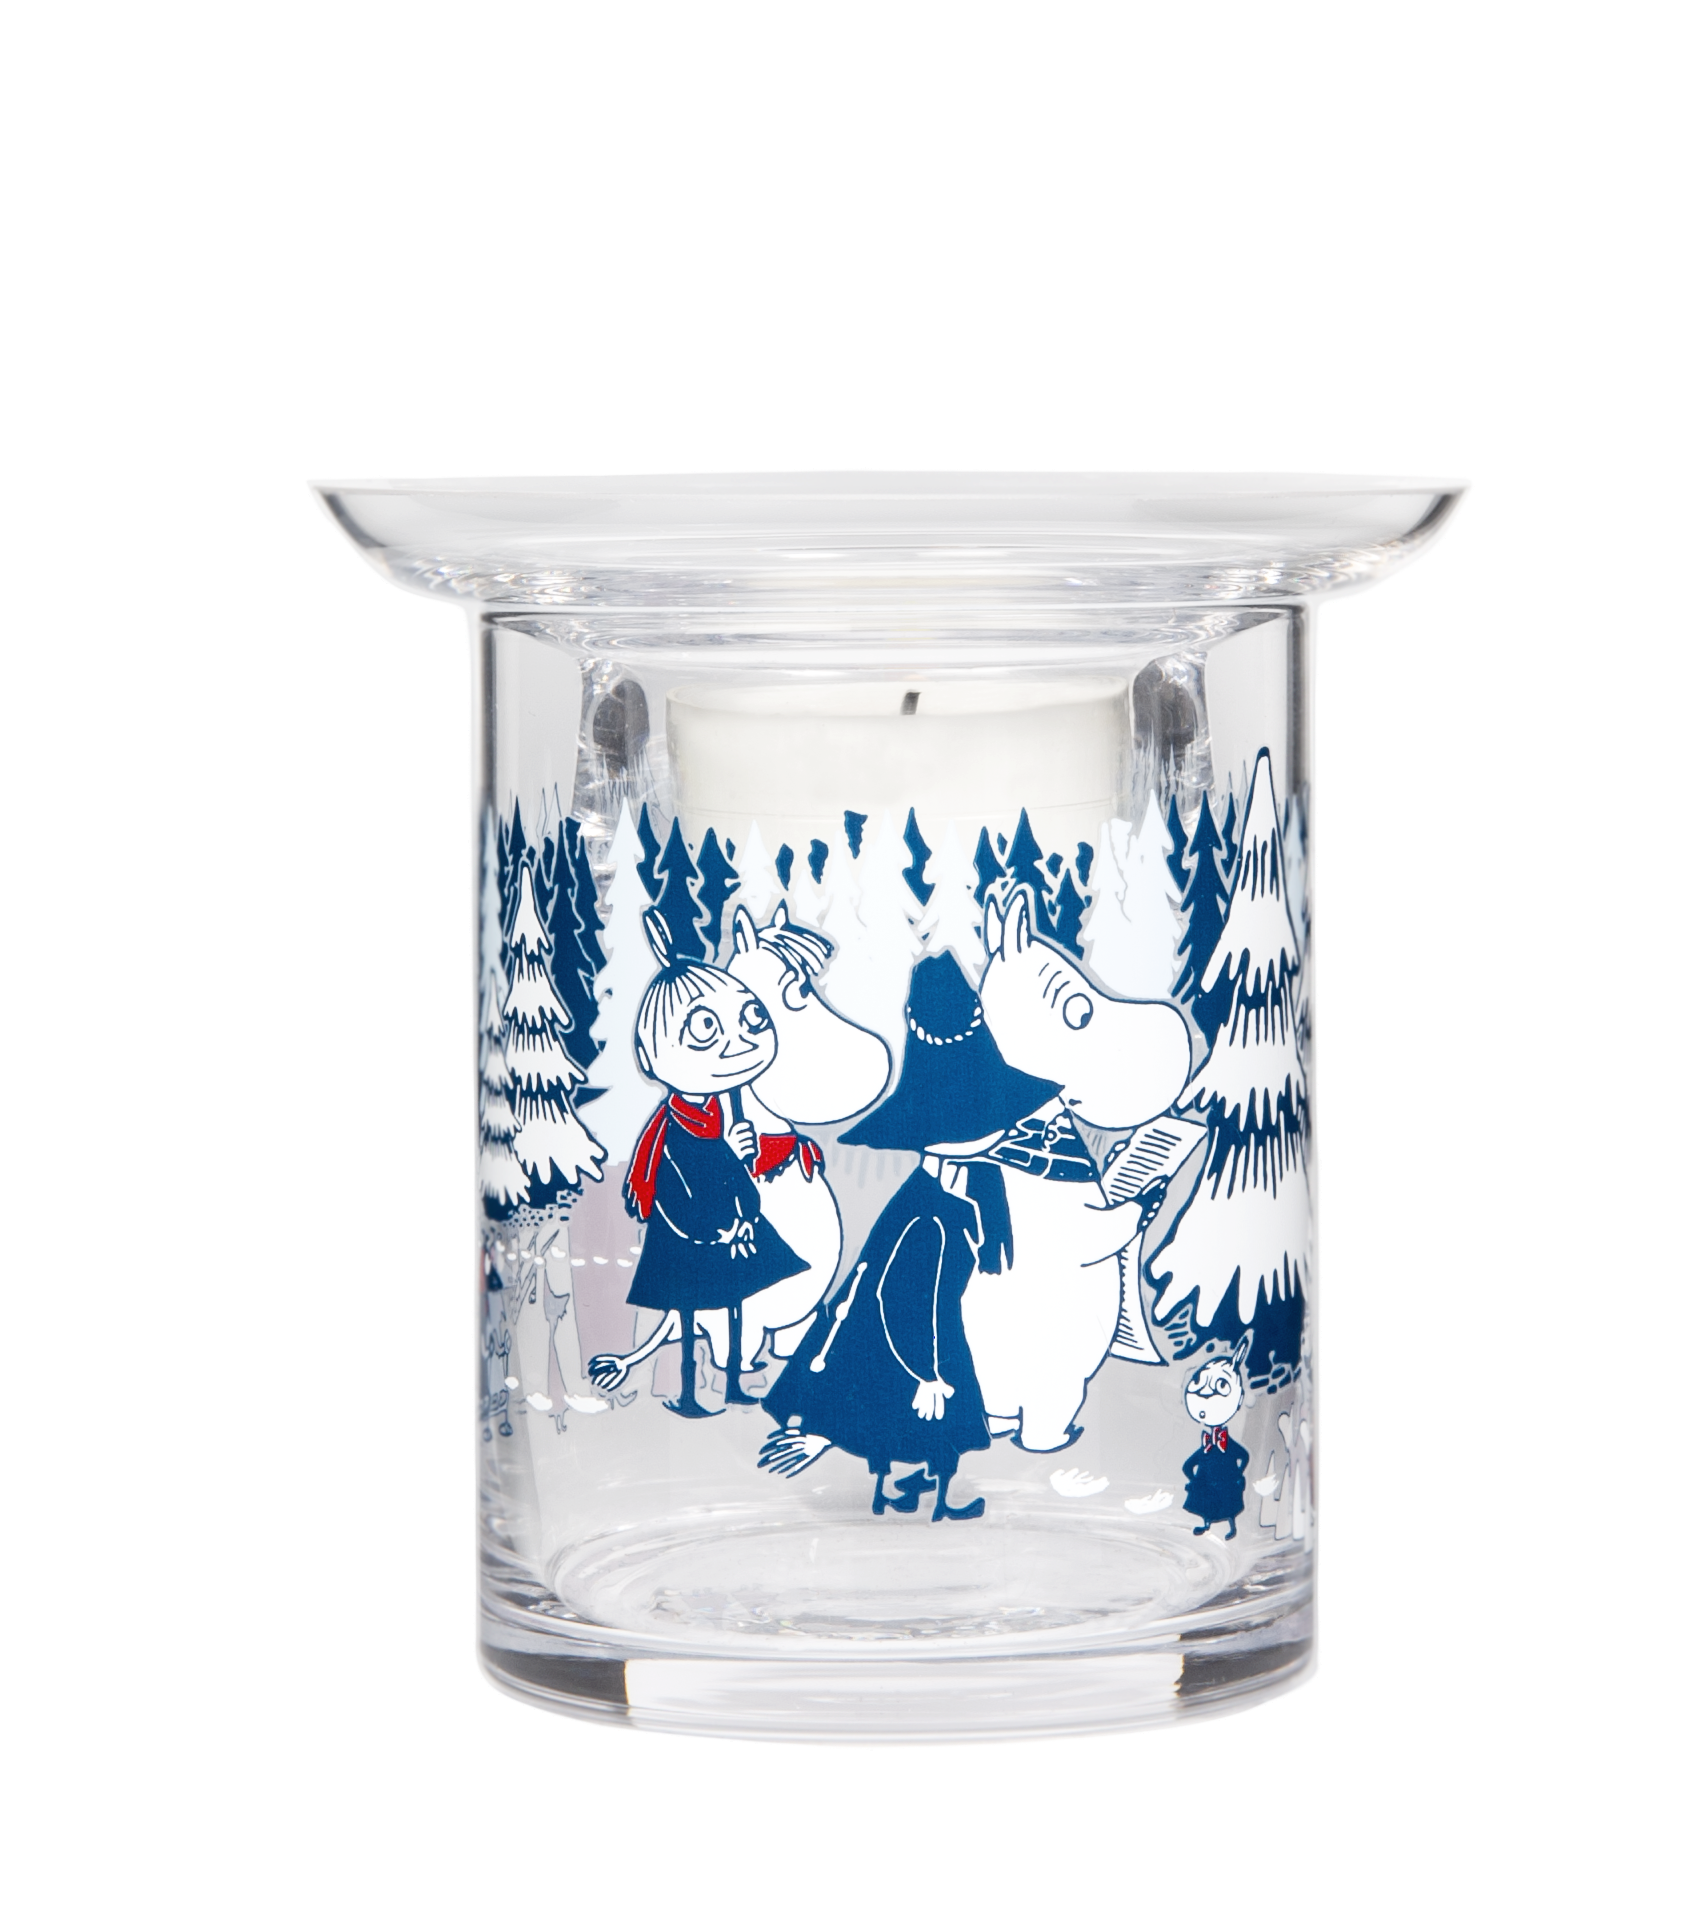 Muurla Moomin Winter Forest tealight holder 10 cm